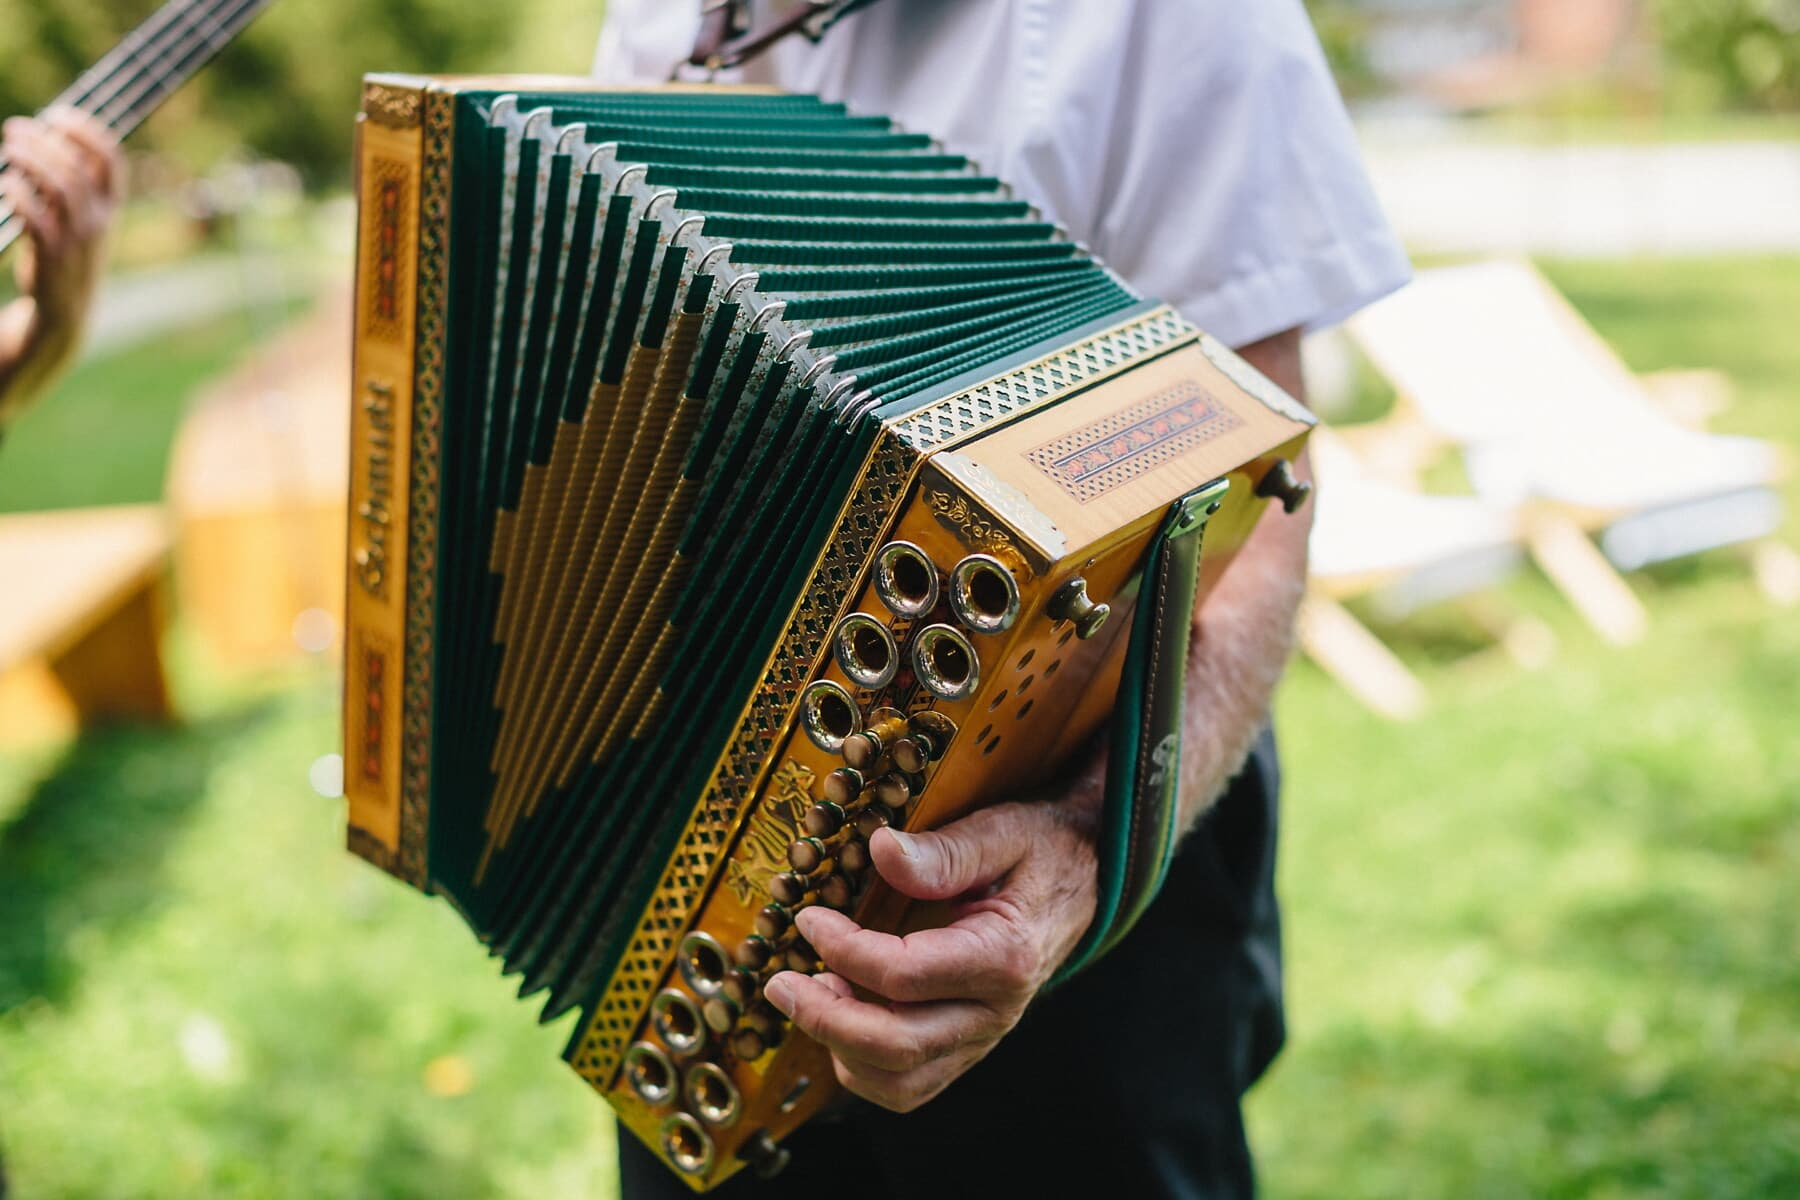 accordion, baroque, golden shine, decorative, ornament, performer, music, musician, melody, outdoors